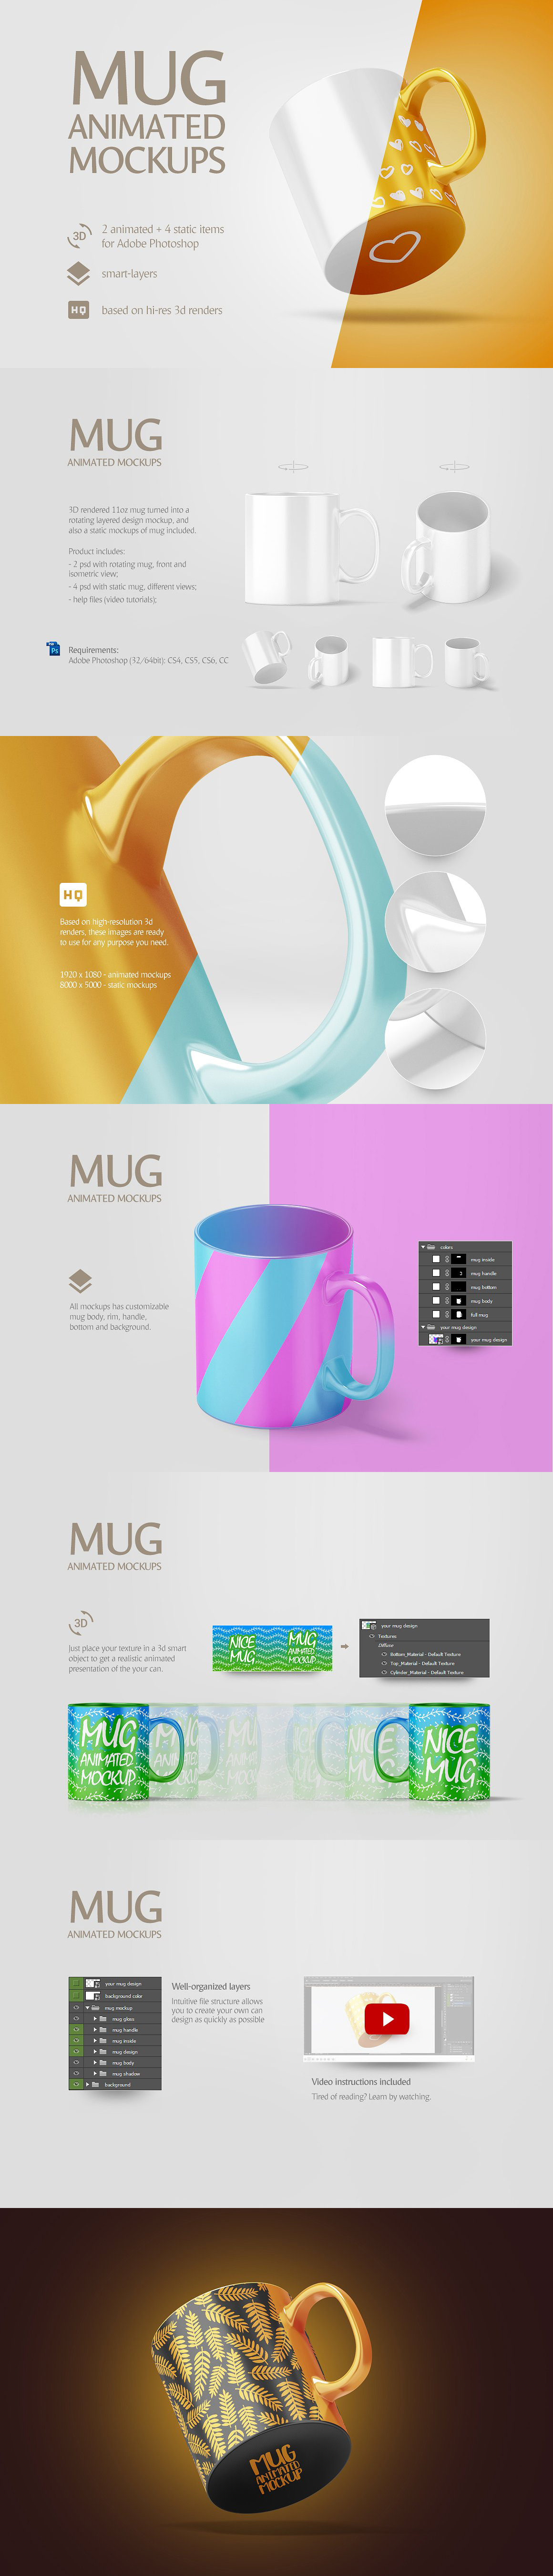 Mug Animated Mockups Bundle example image 3